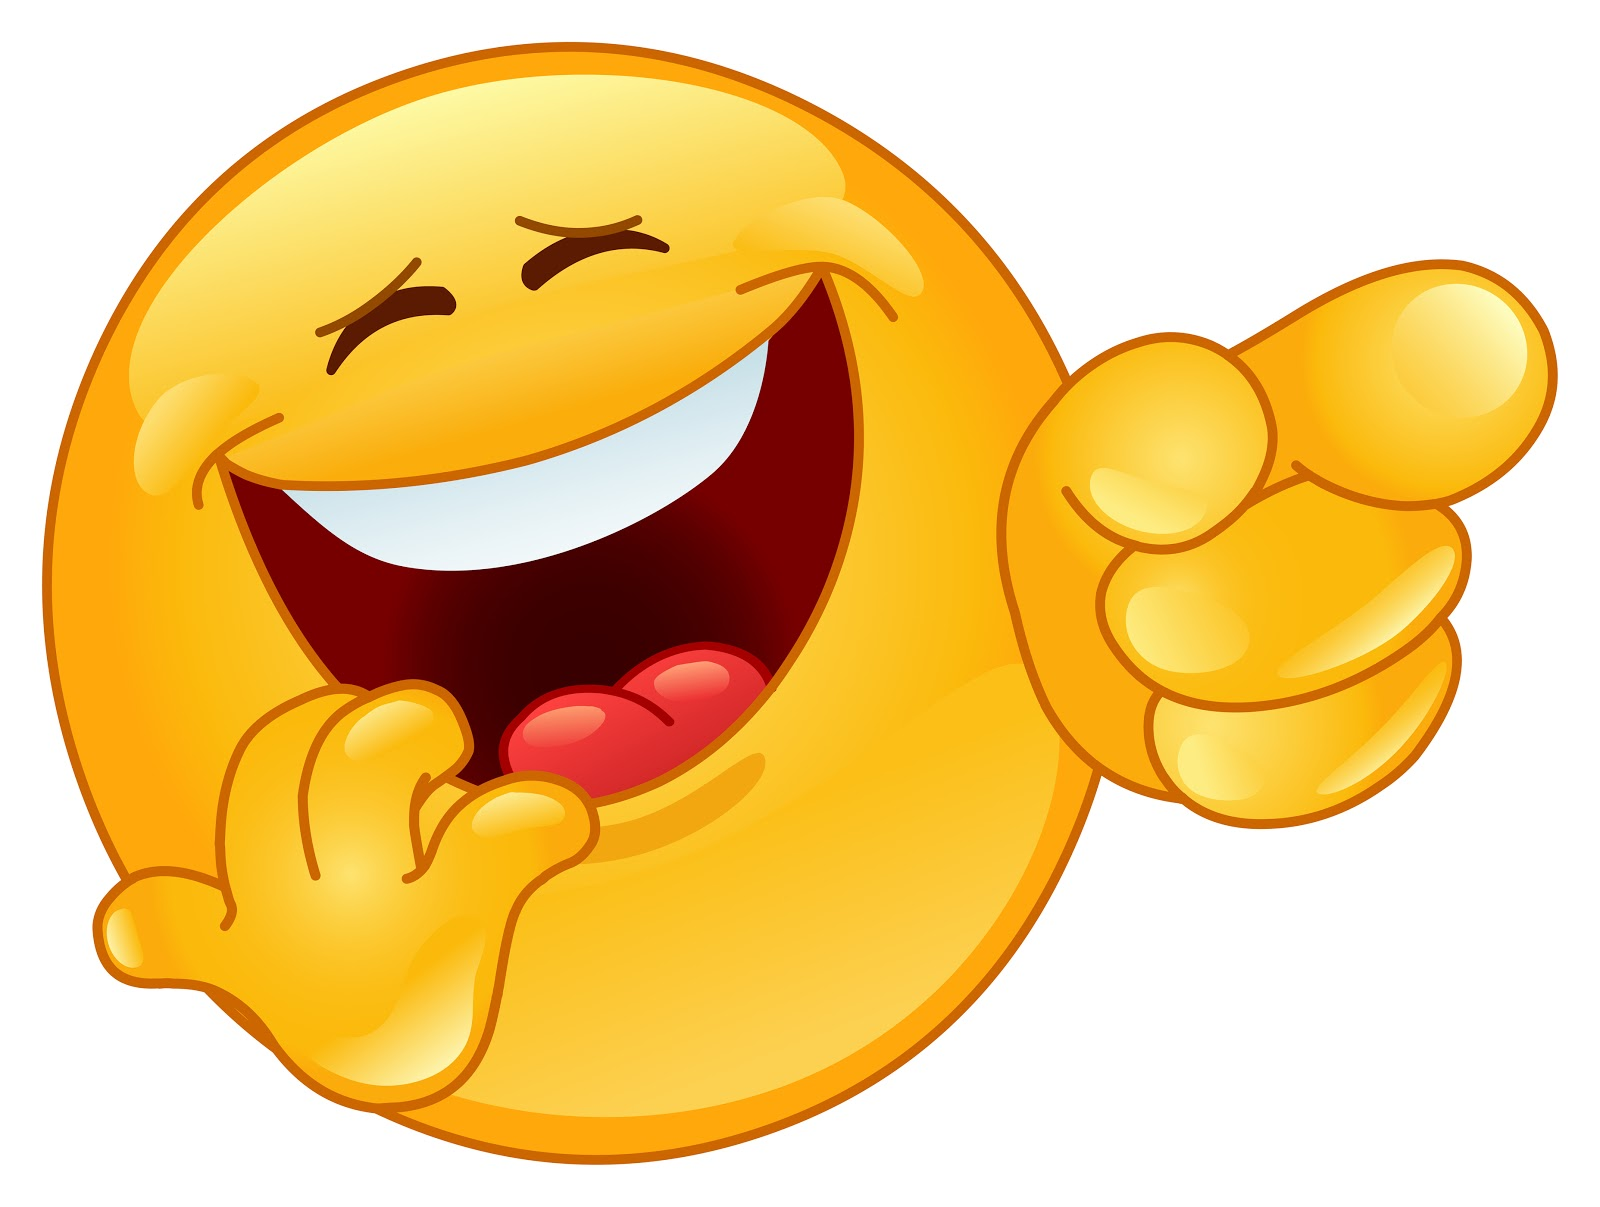 Clipart laughing face image freeuse stock Laughing Face Clipart - Clipart Kid image freeuse stock